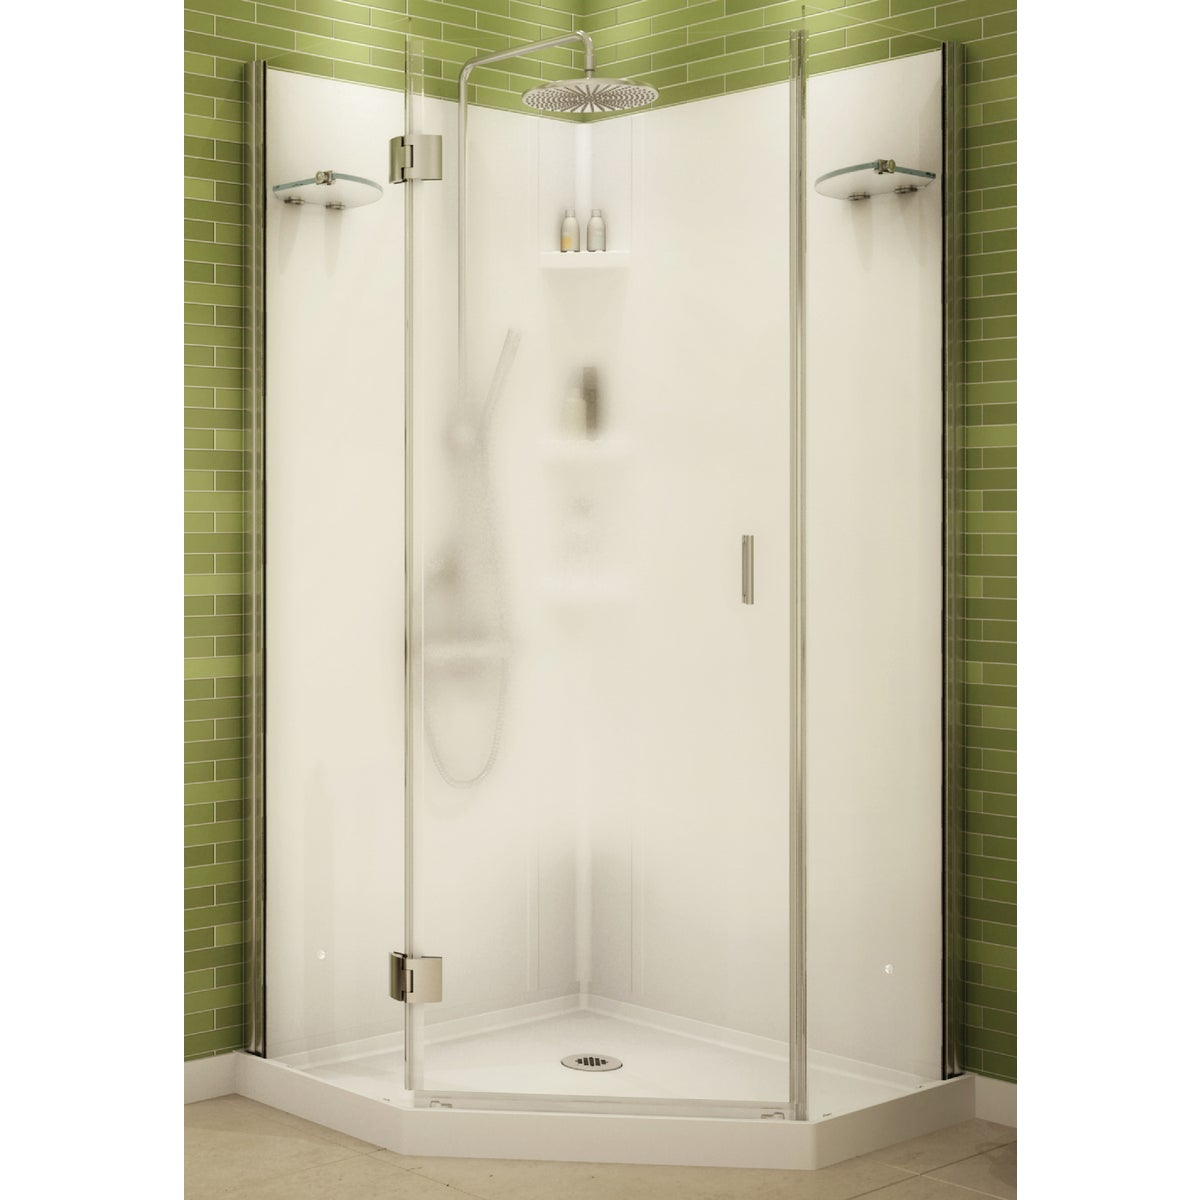 FRAMELESS NEO SHOWER - 105545-129 by Maax Bath